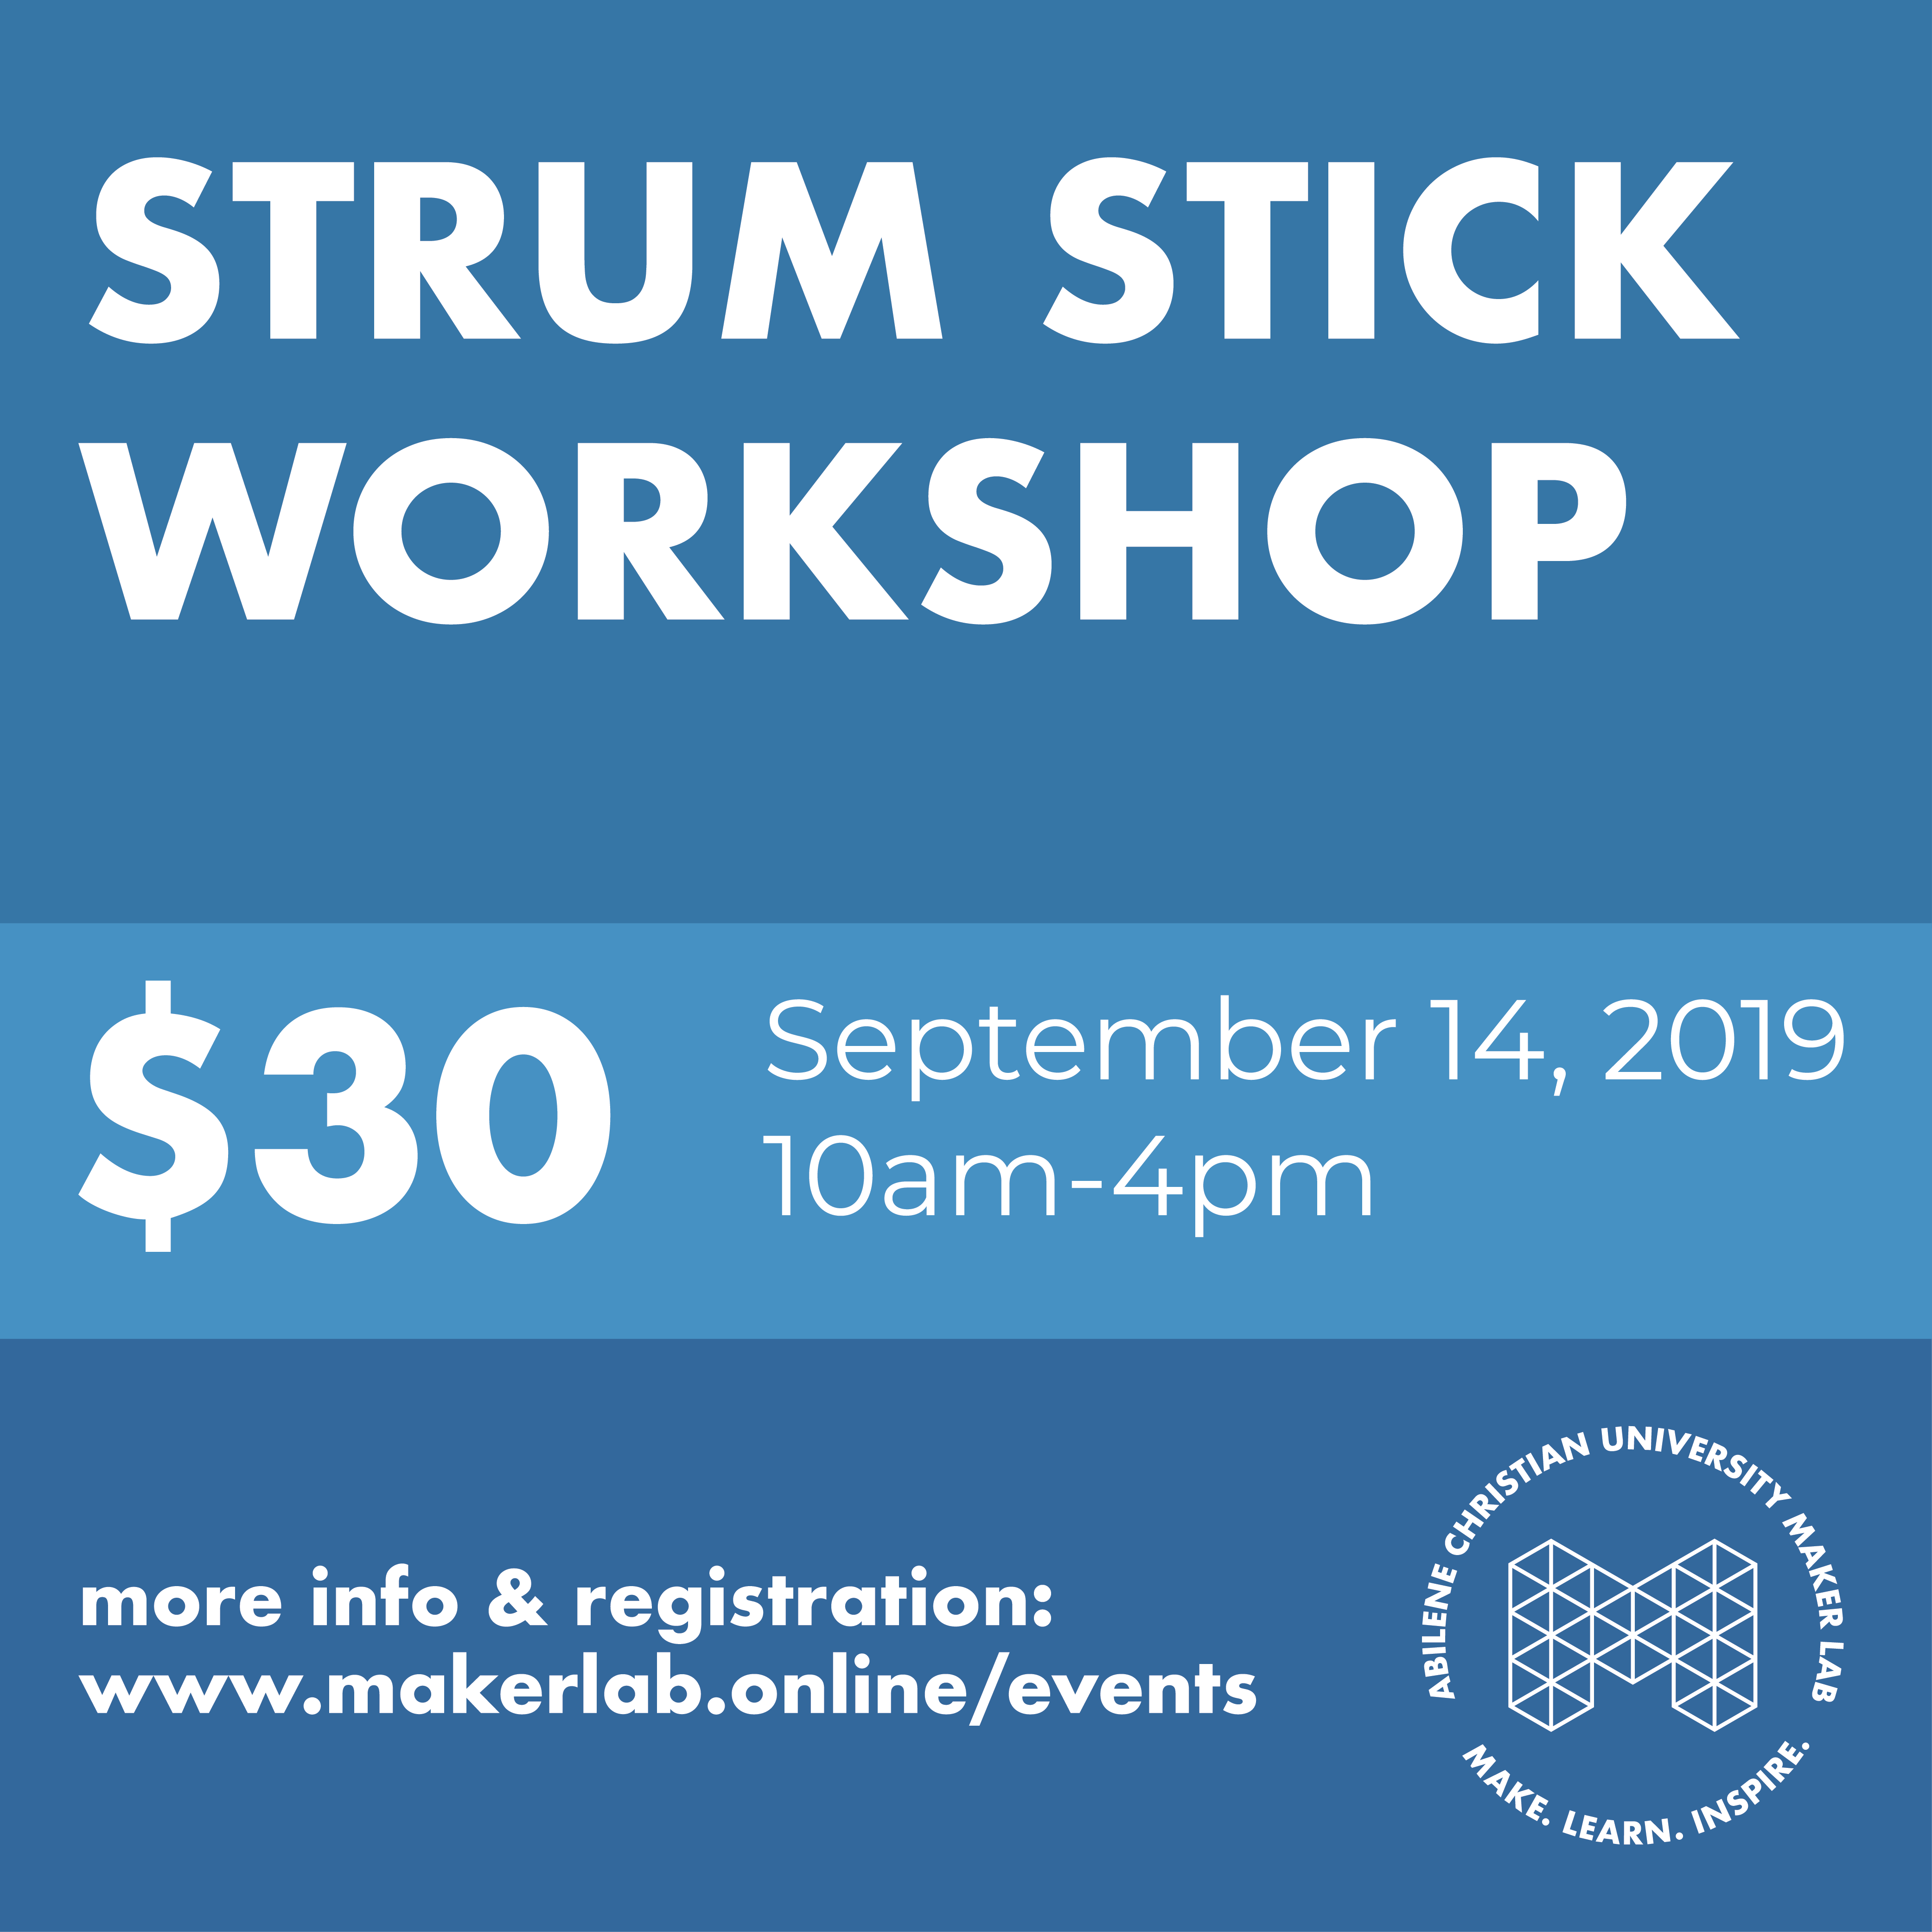 Strum Stick Workshop (SEPT 14, 2019)